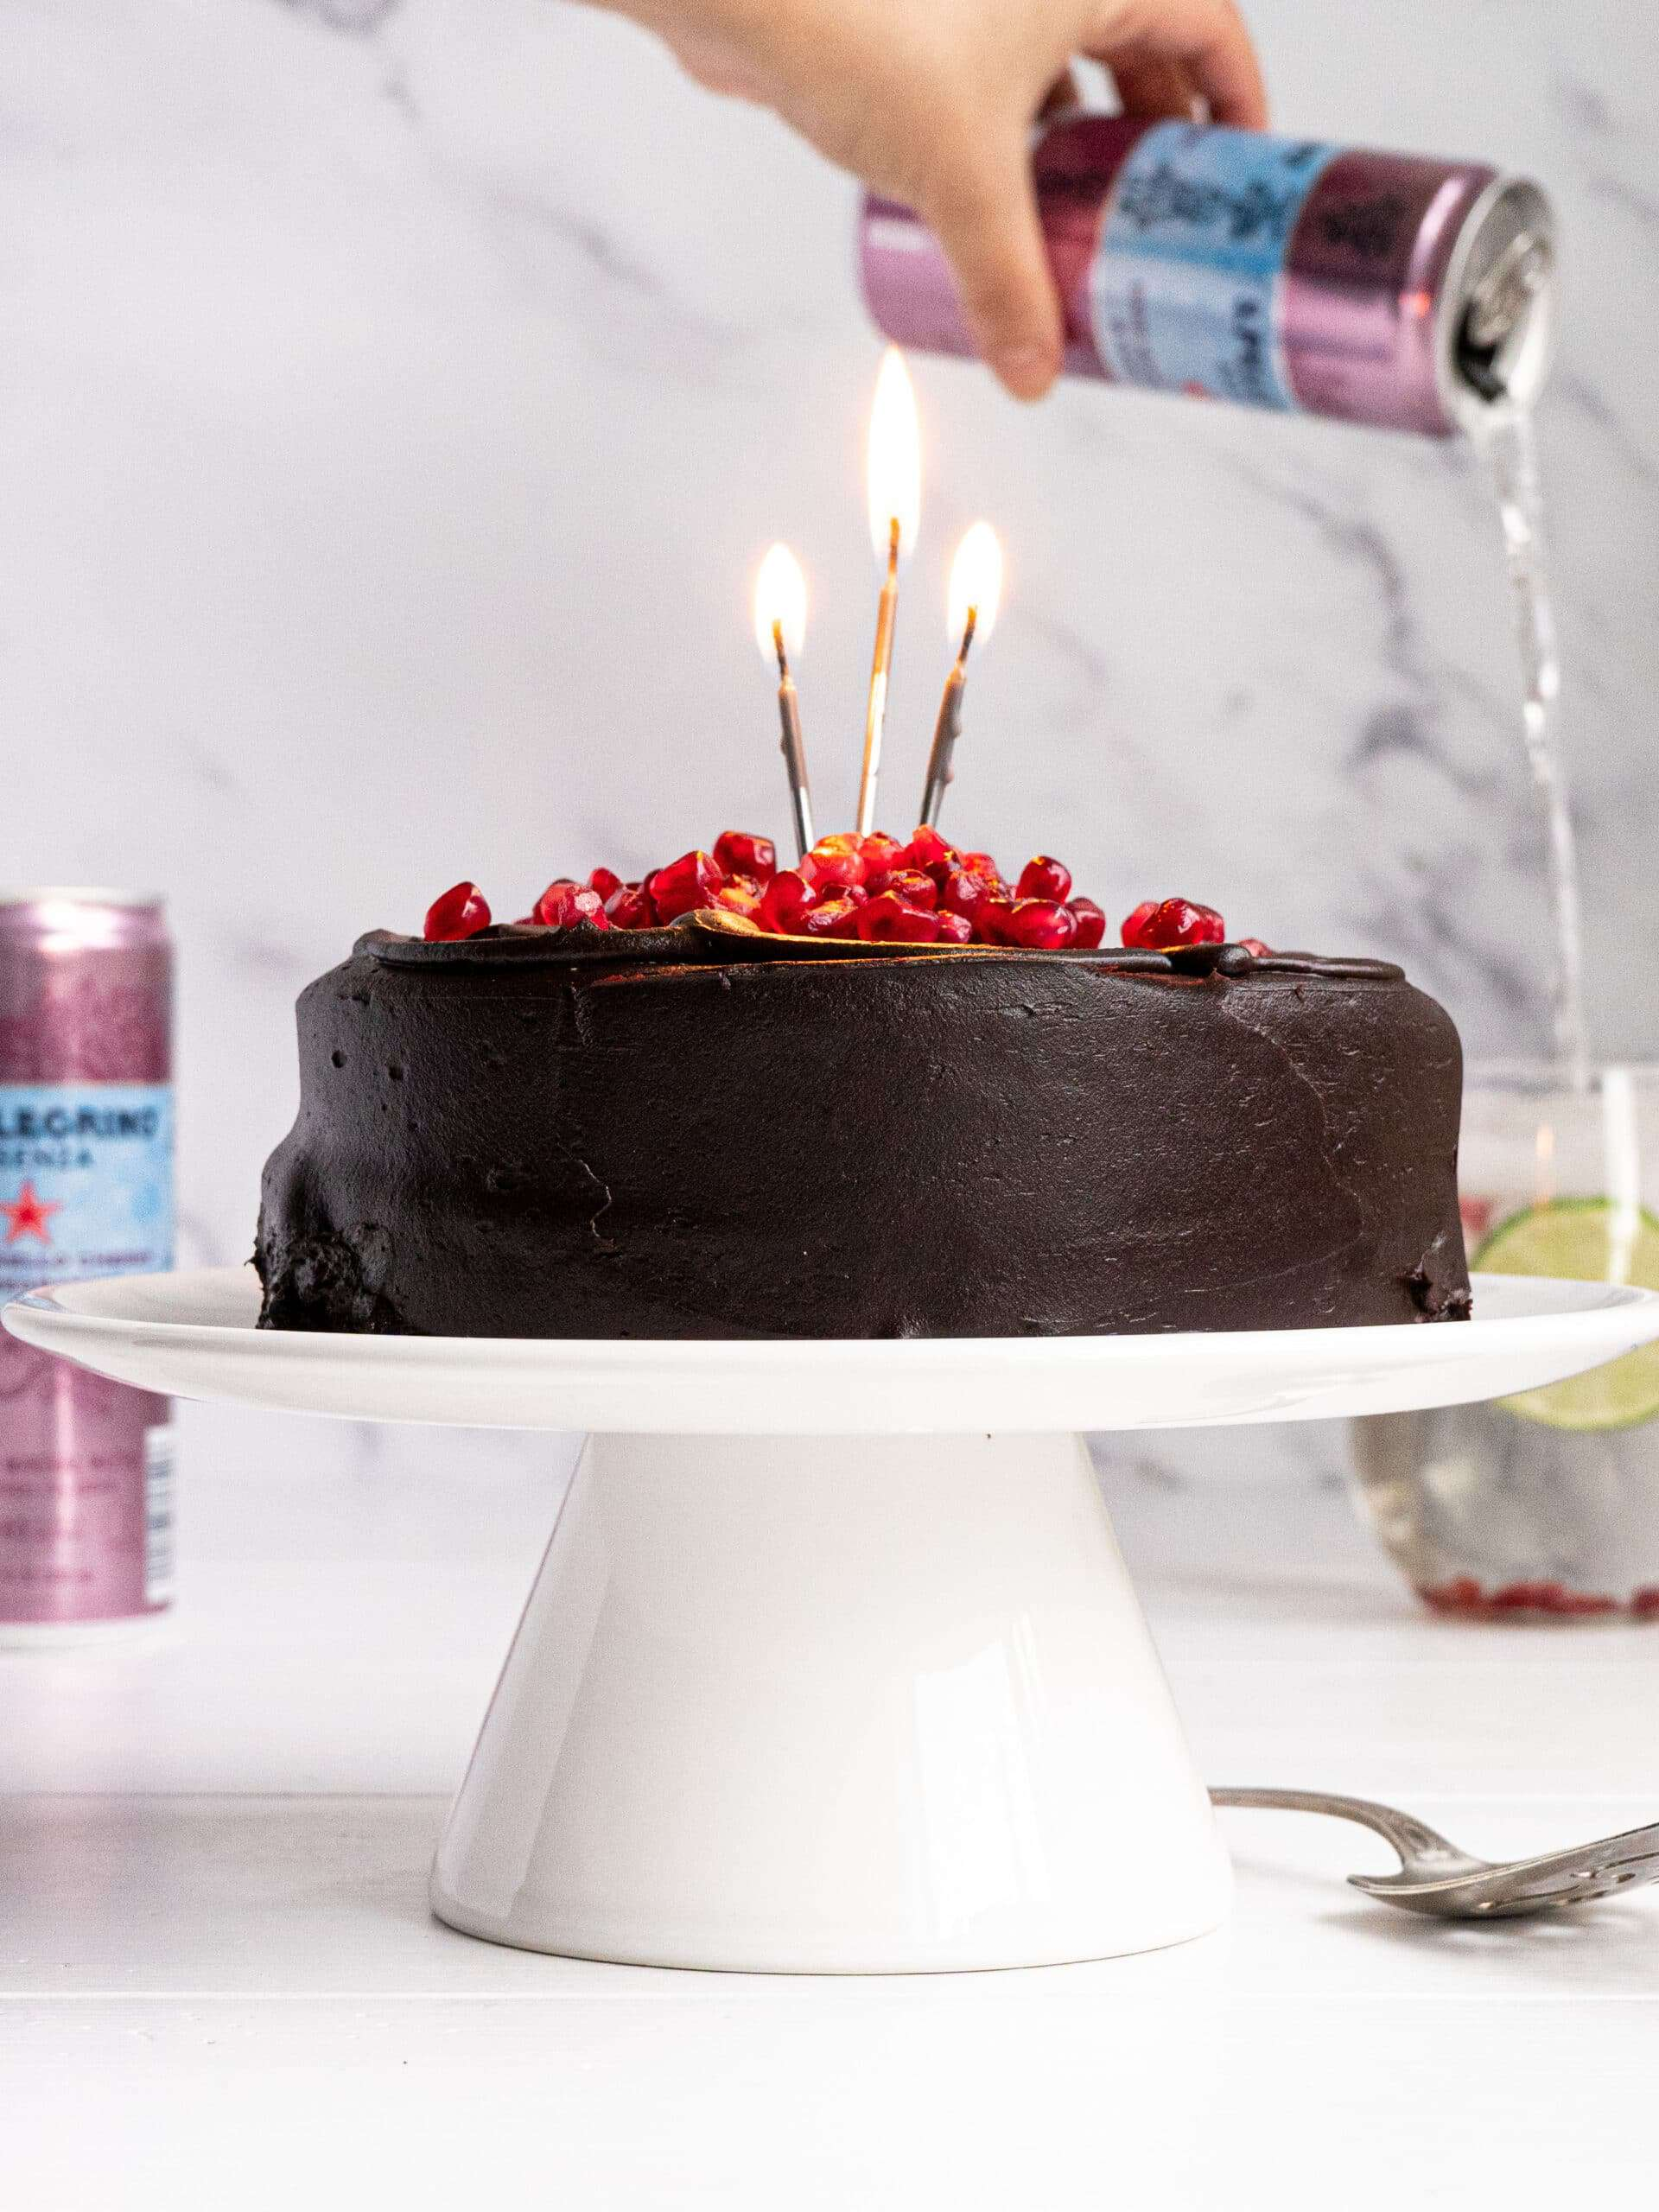 A chocolate cake with bubbly water